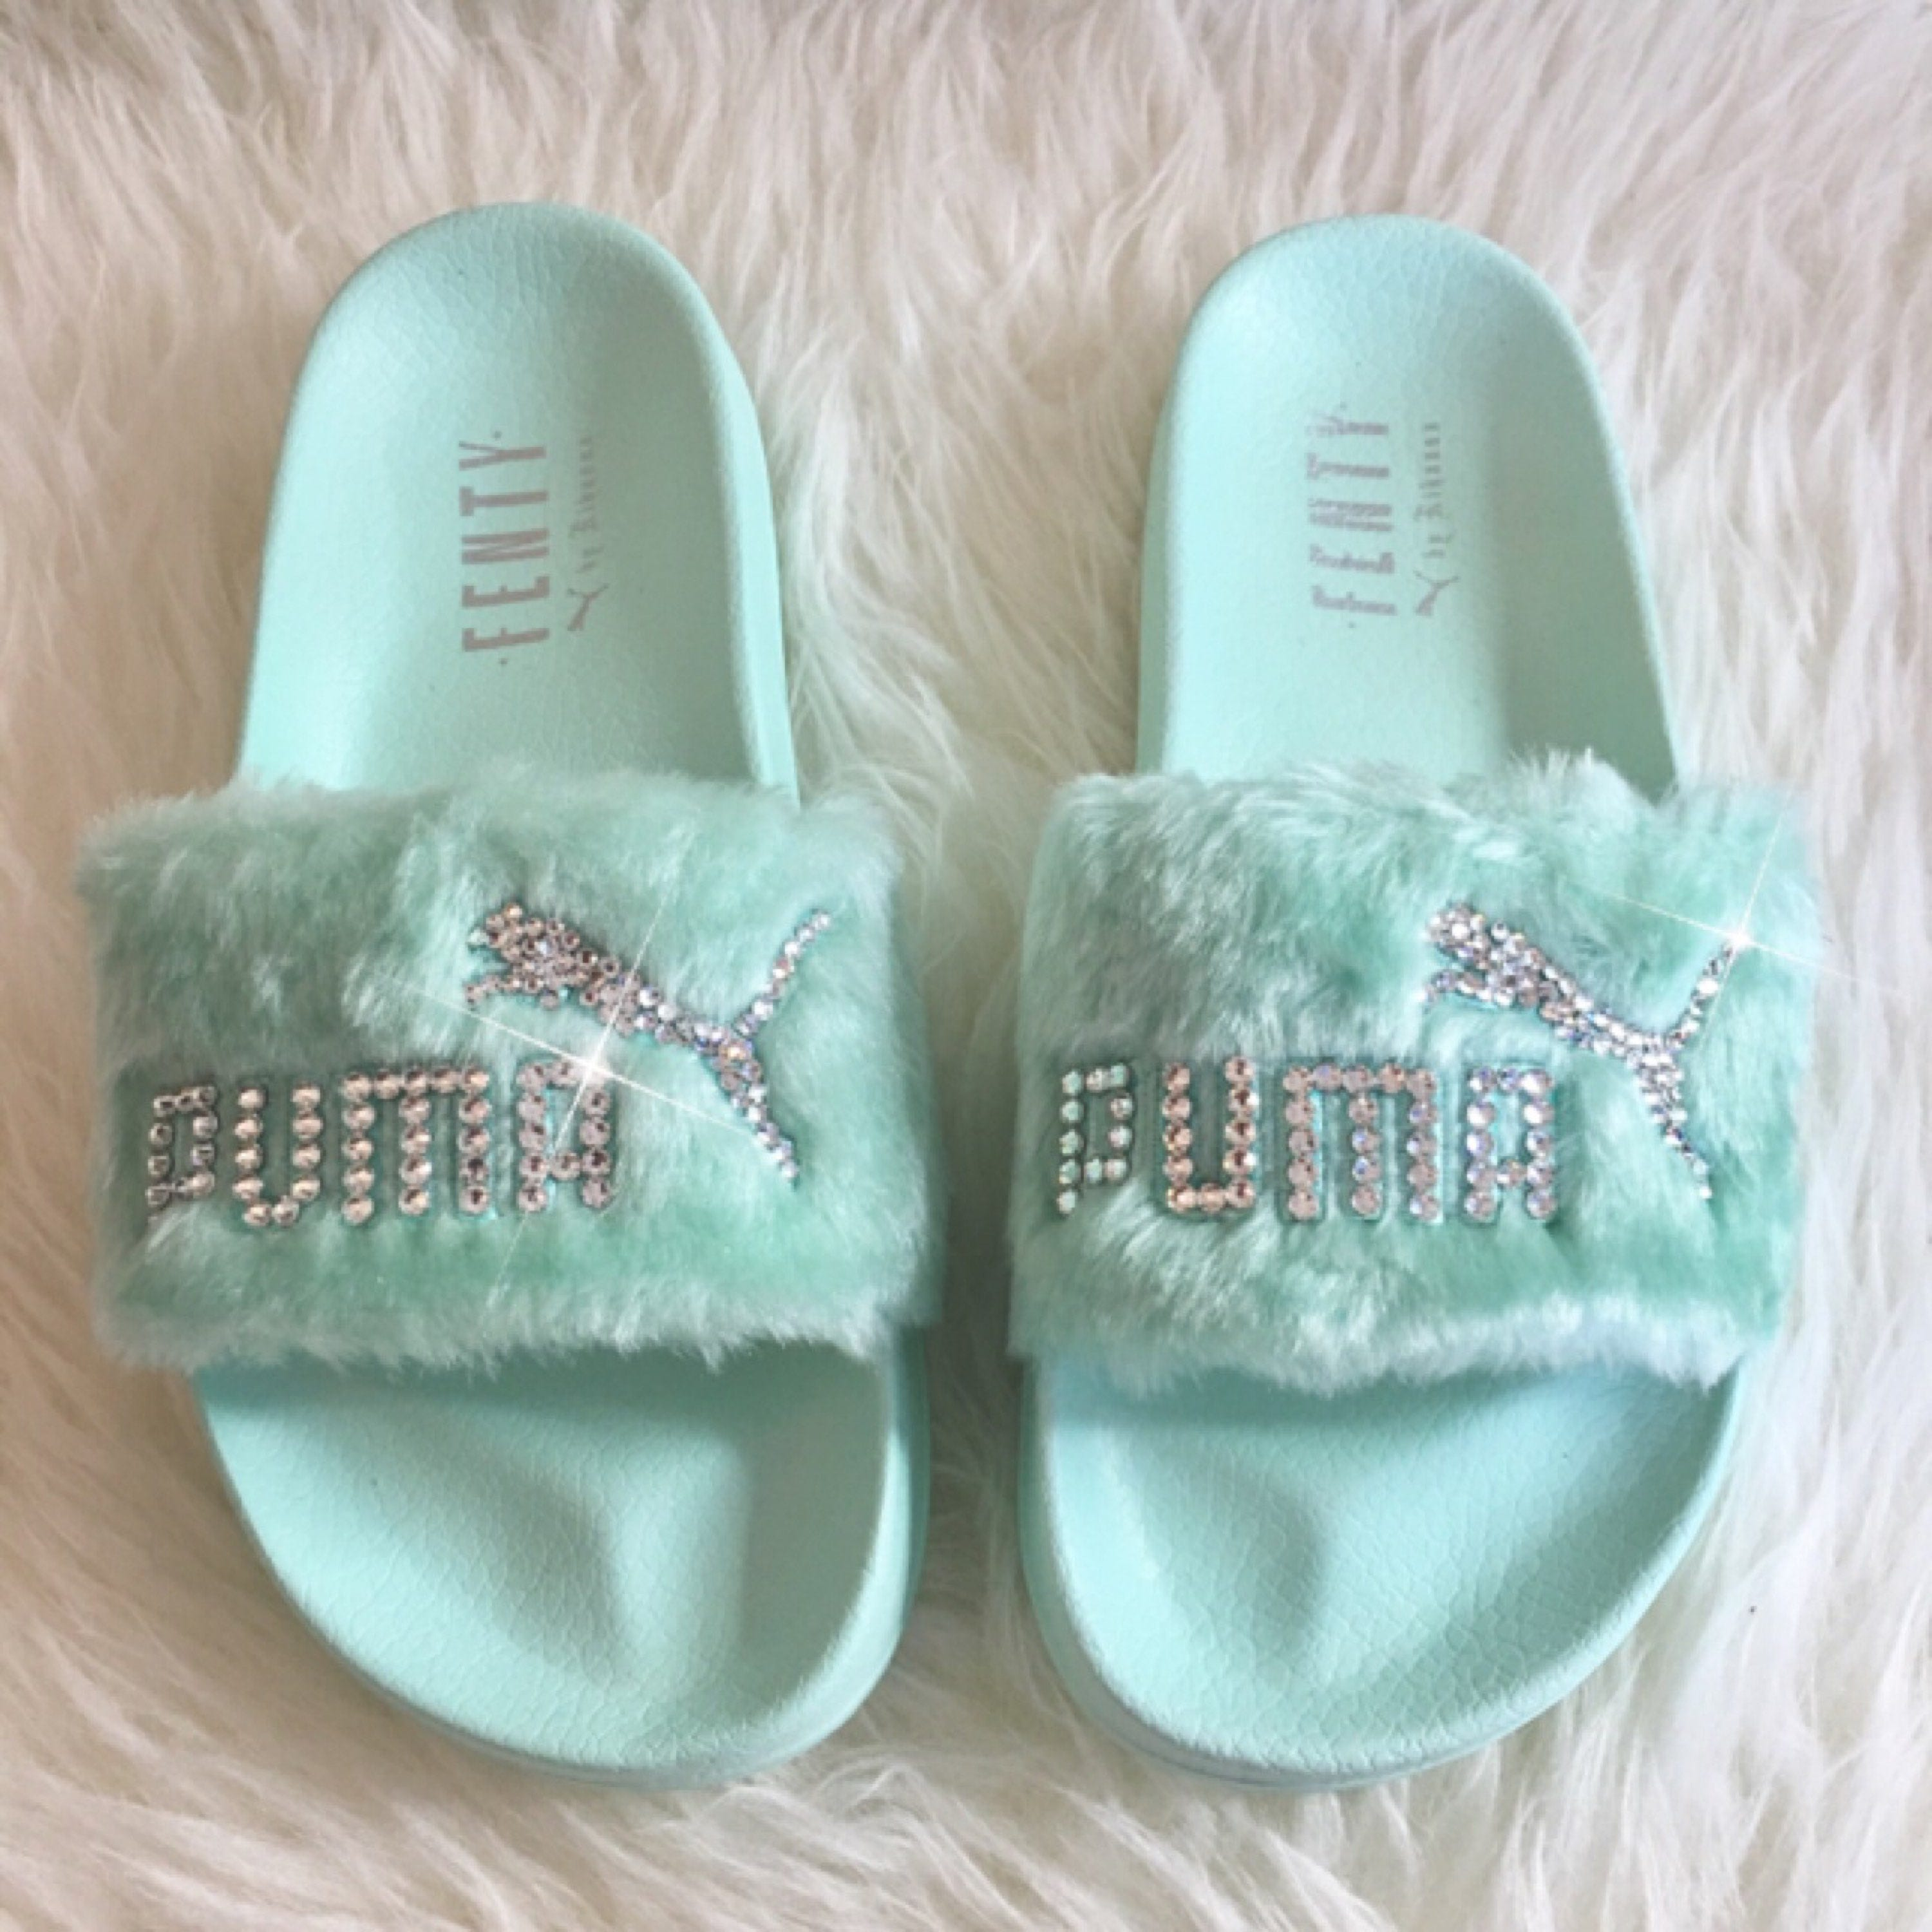 reputable site 5a7a4 9041d Rihanna's Bling Custom Women's Puma Fenty Fur Slides In Pastel Green With  Beautiful Swarovski Crystals- Limited Edition !